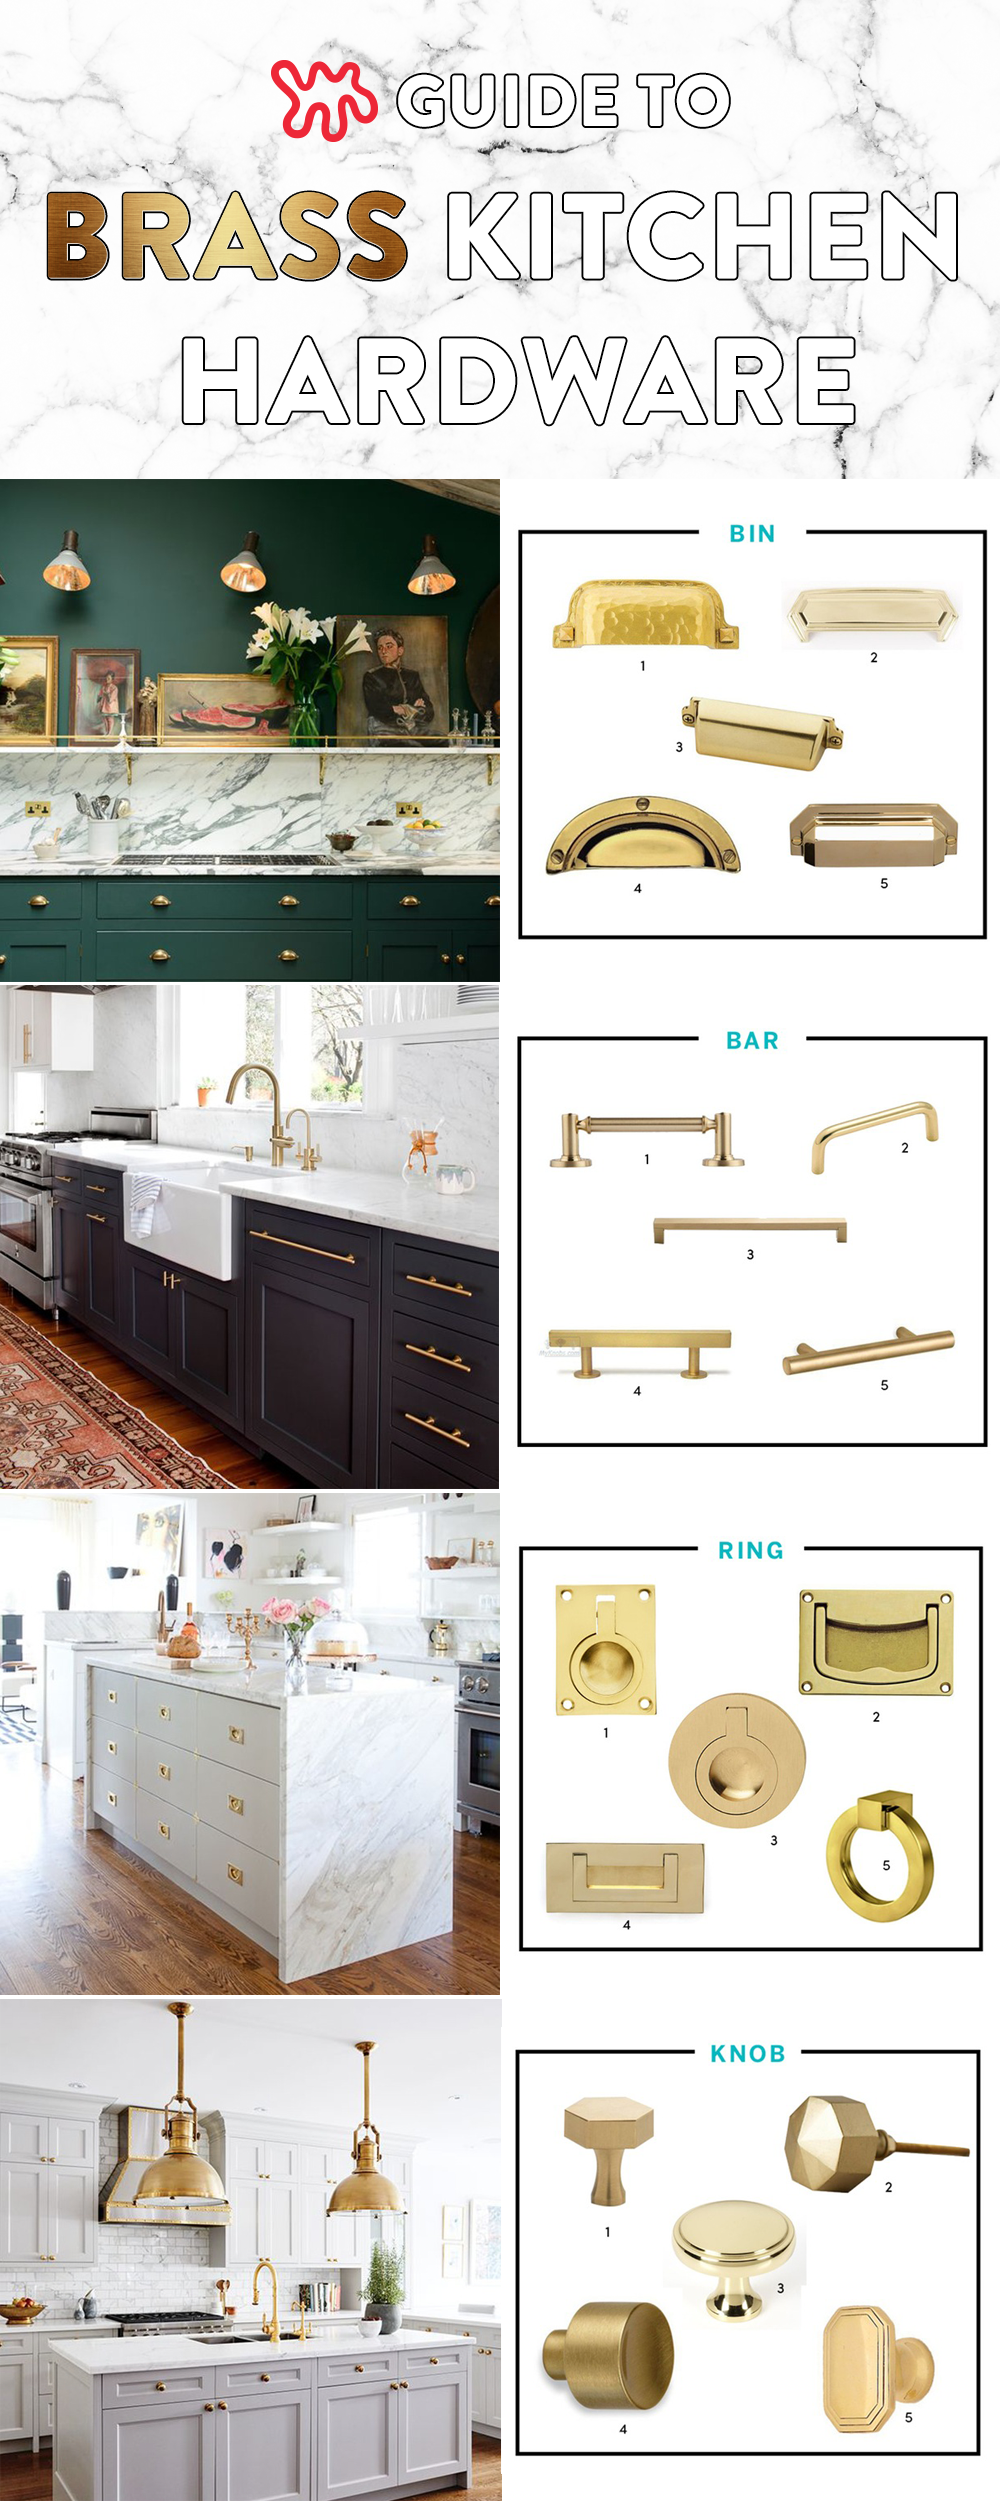 brass kitchen hardware ikea counters all about that a shopping guide renovating looking to update your with let s take look at four main categories bin pulls bar ring and of course knobs